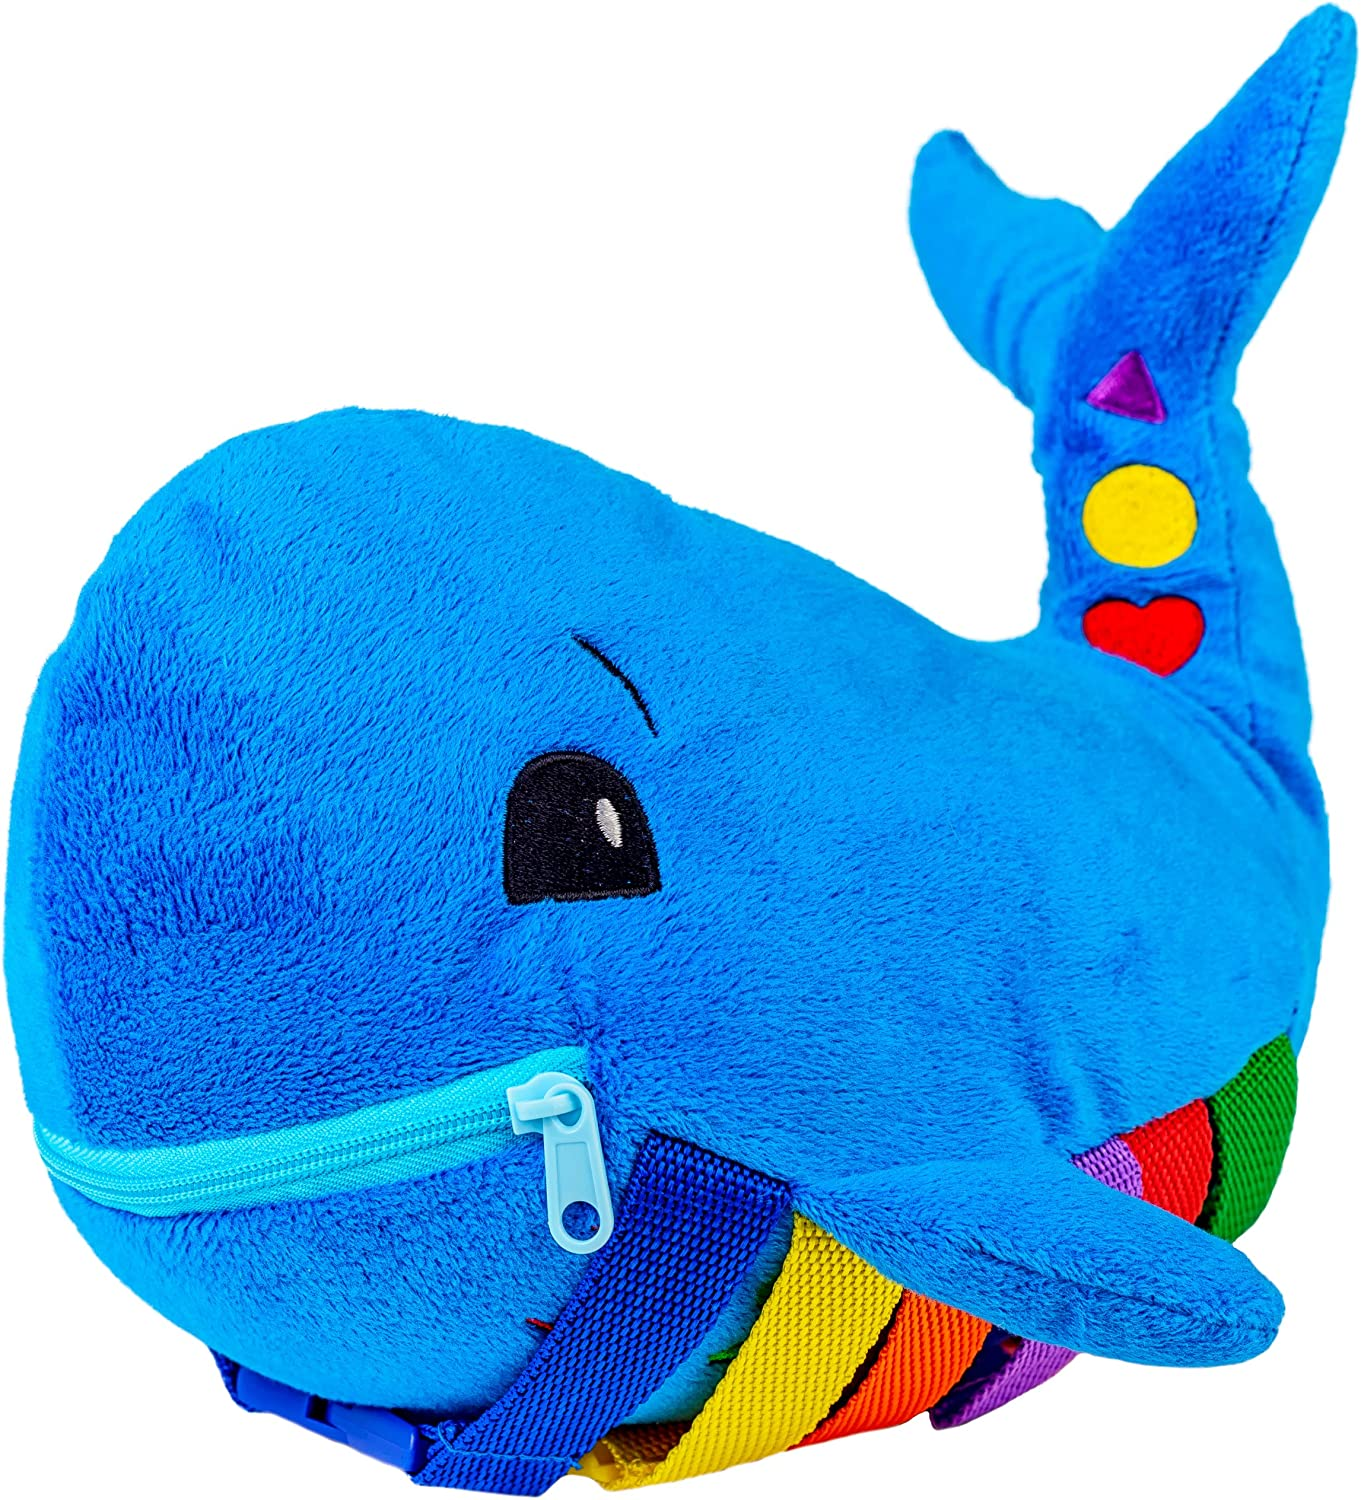 Kid/'s Buckle Hold Pillow Toddler Early Learning Basic Skills Plush Toy Colorful